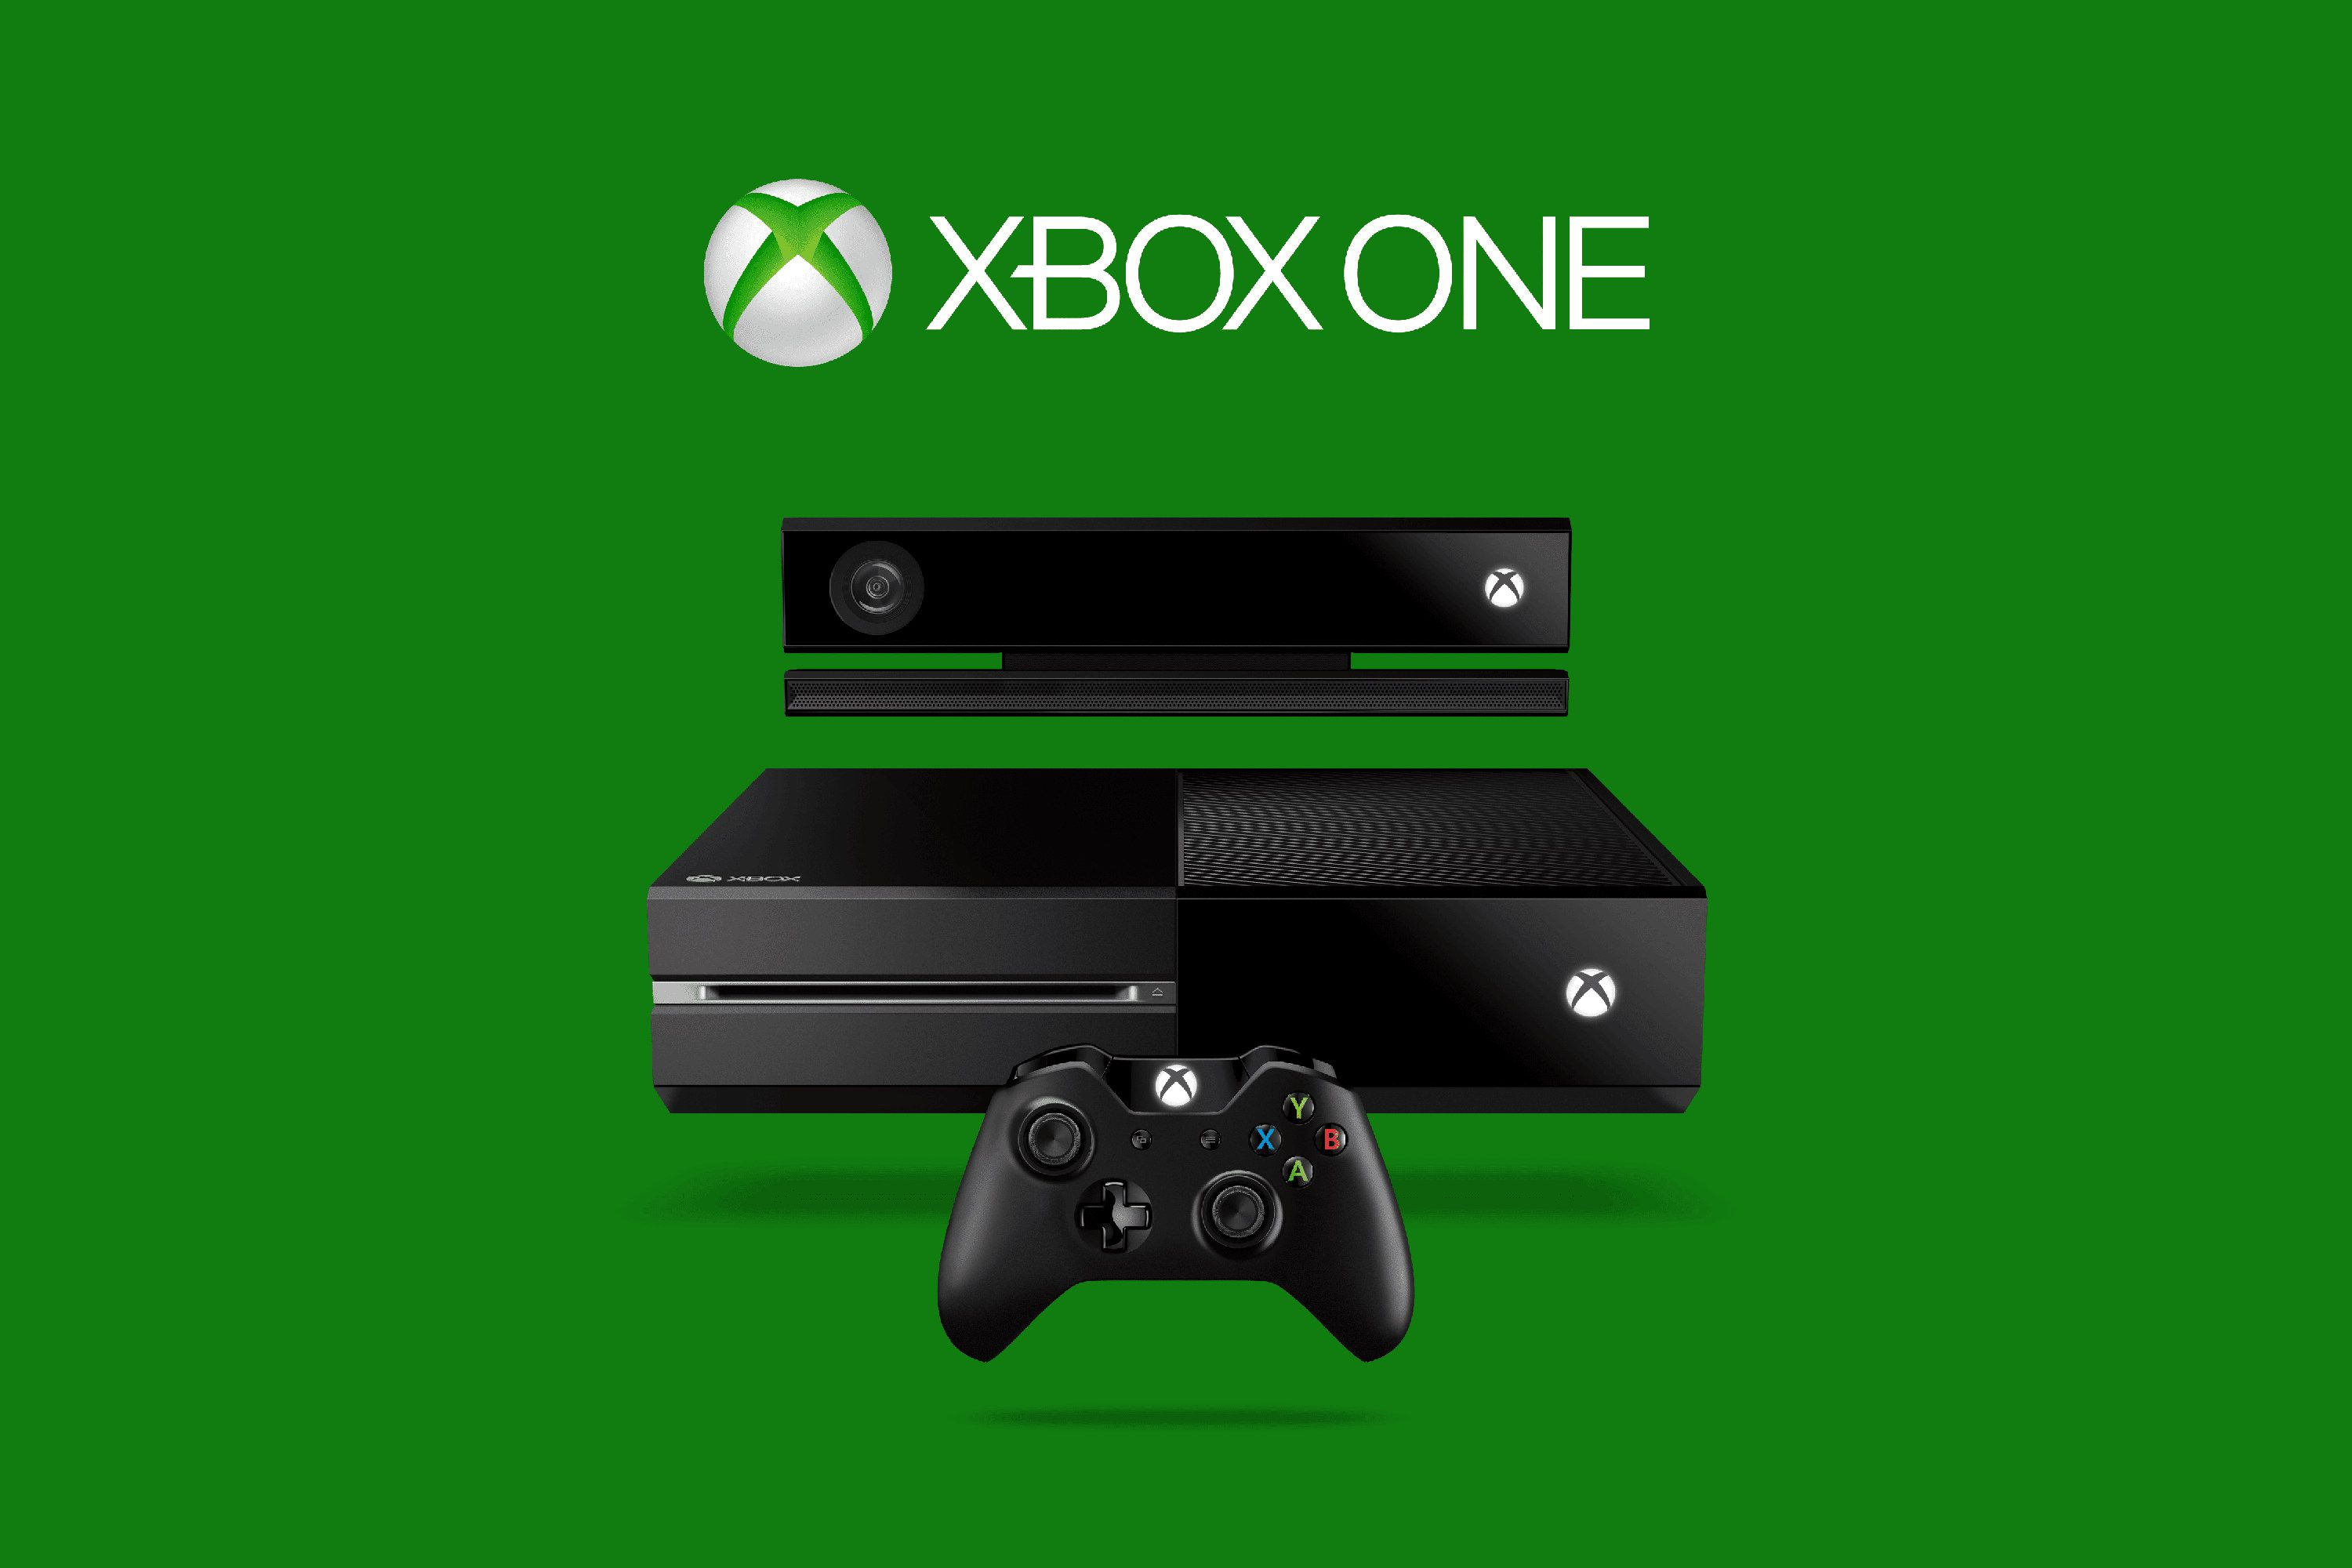 Xbox One Frequently Asked Questions and Info